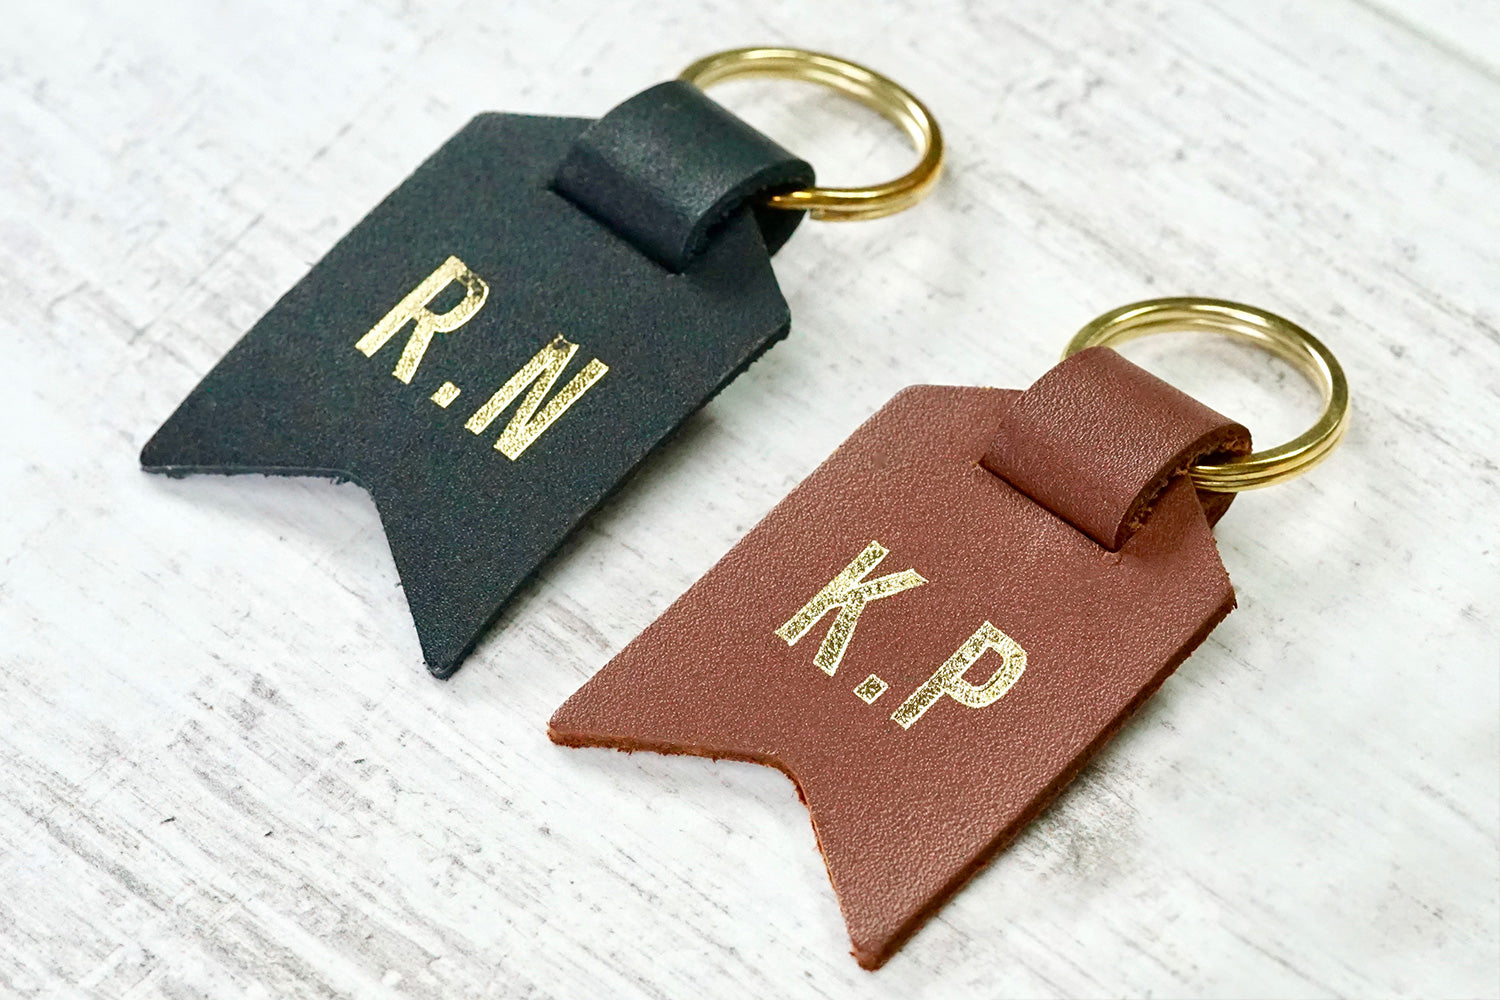 Couple keychain from Bookshell Bindery monogrammed with 2 intials